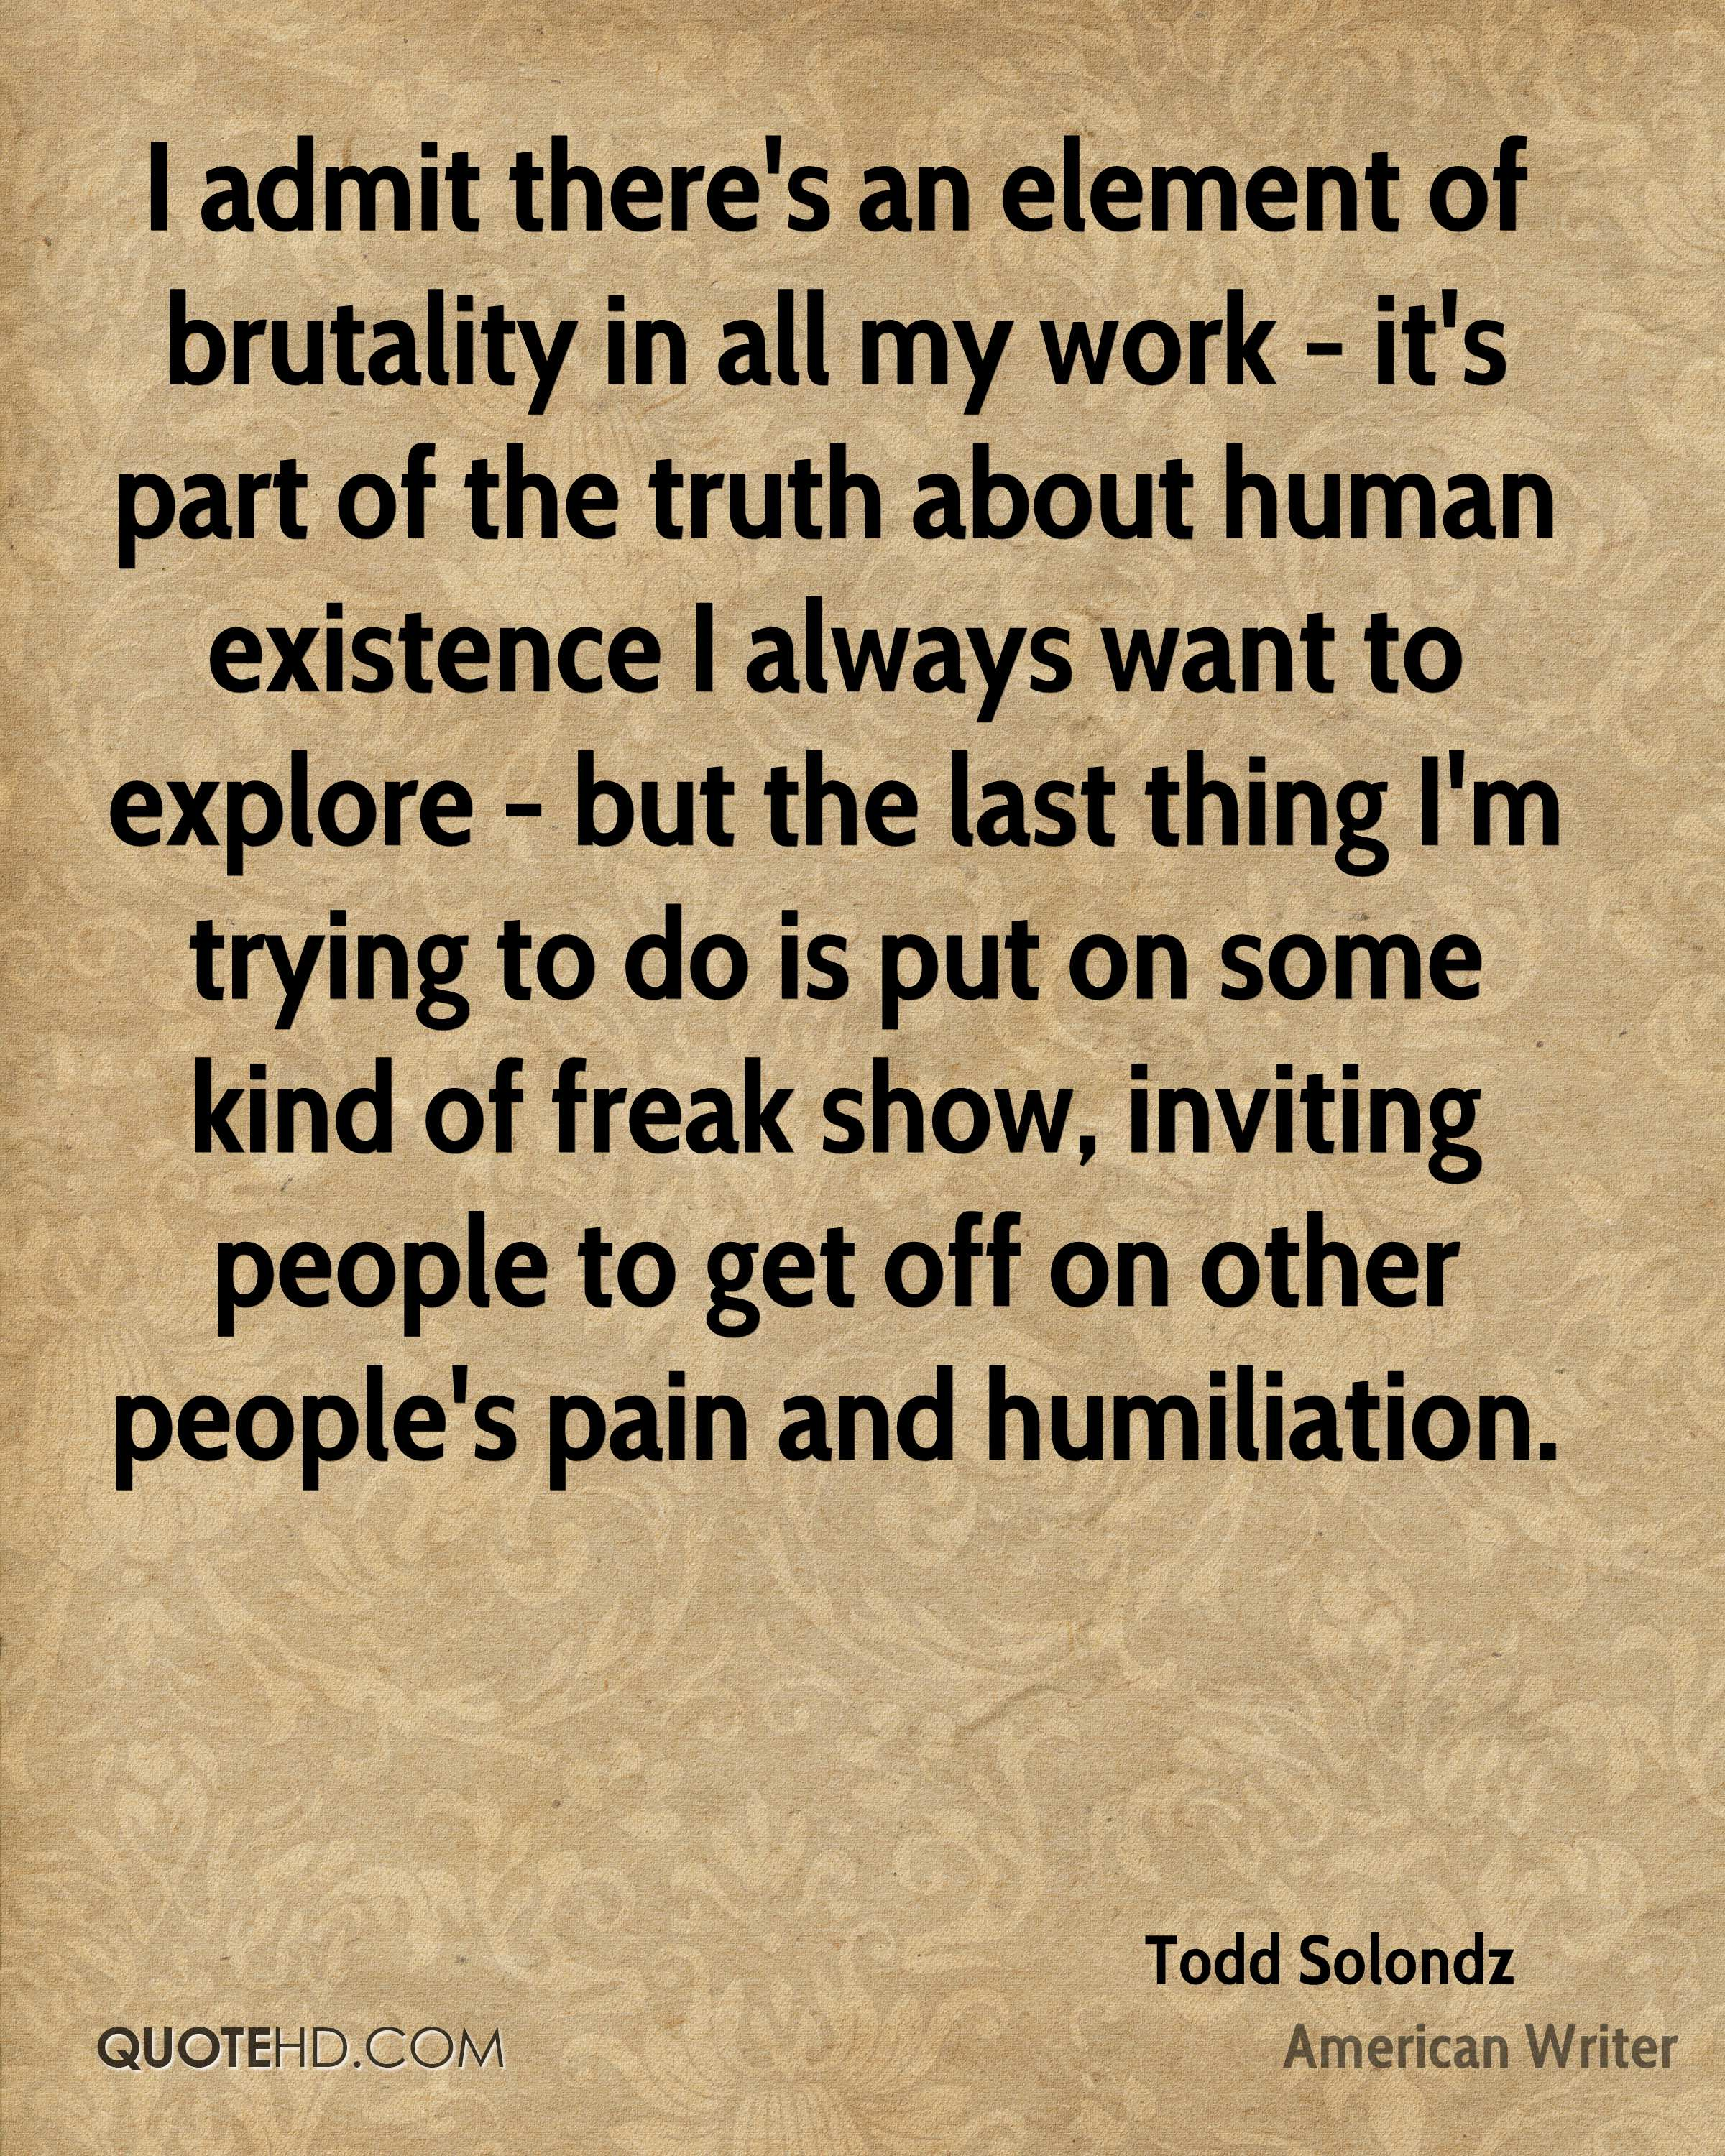 I admit there's an element of brutality in all my work - it's part of the truth about human existence I always want to explore - but the last thing I'm trying to do is put on some kind of freak show, inviting people to get off on other people's pain and humiliation.